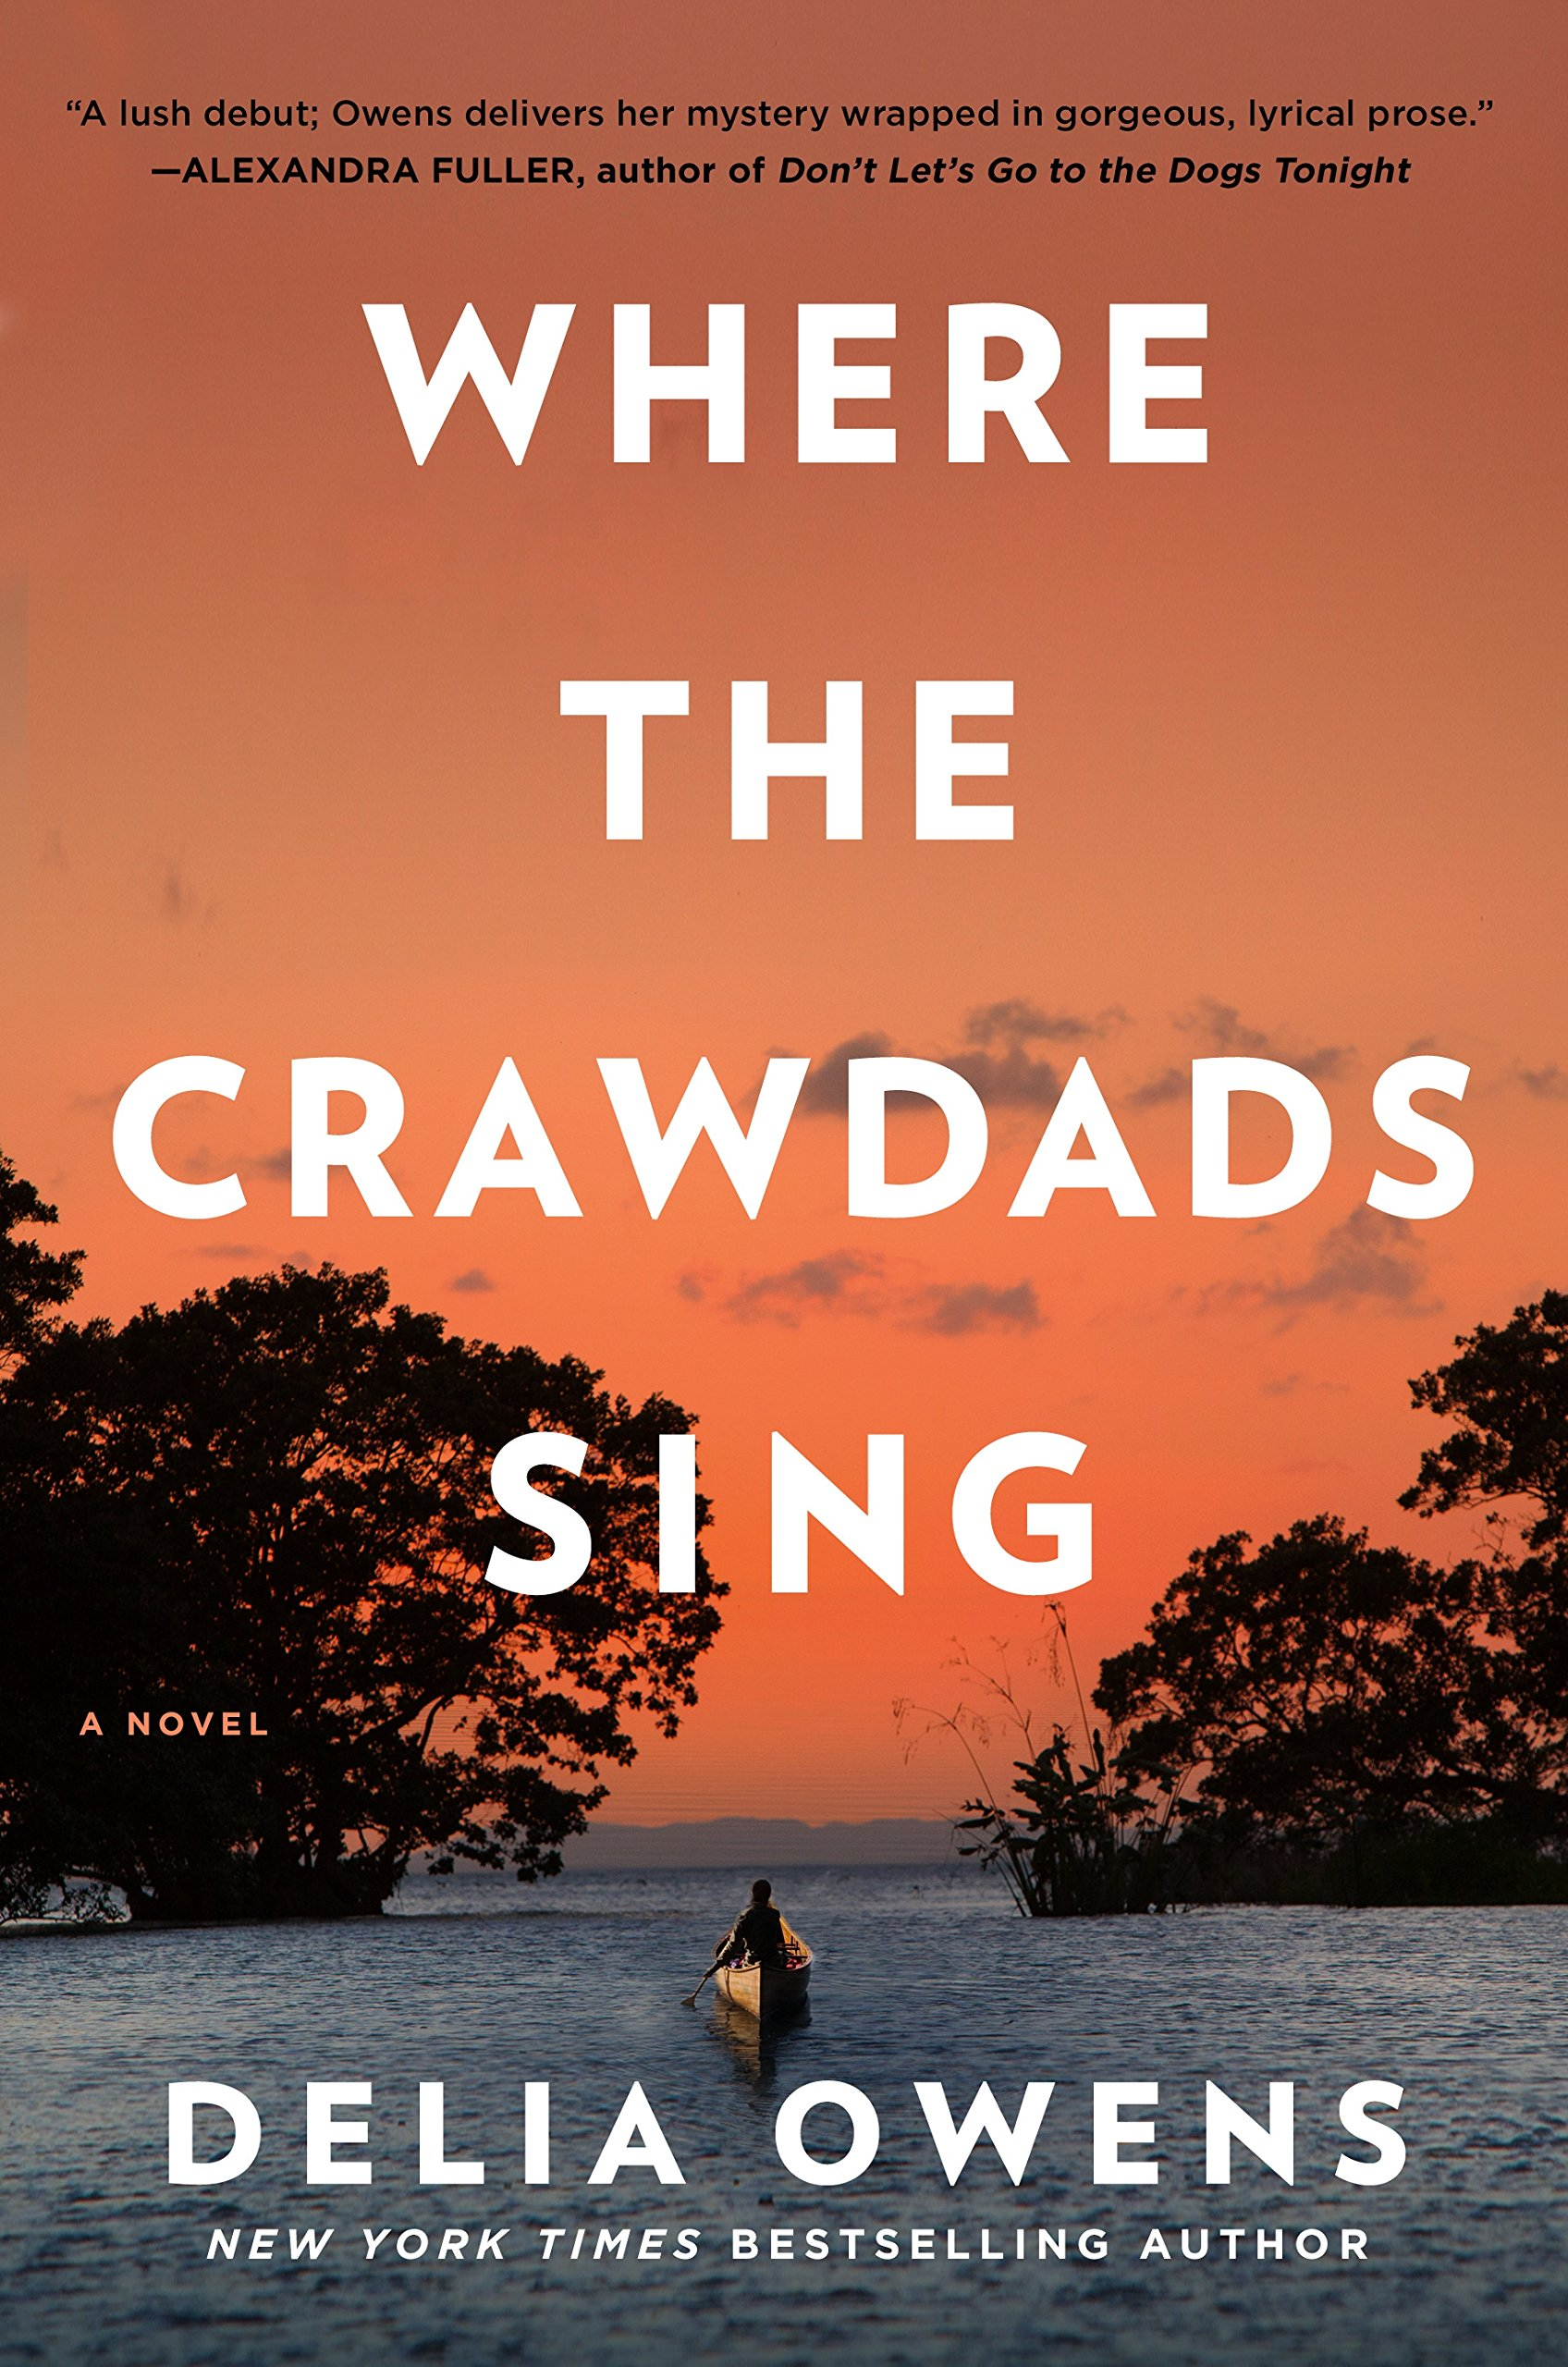 Yorck Wohnideen Gbr where the crawdads sing delia owens 9780735219090 amazon com books